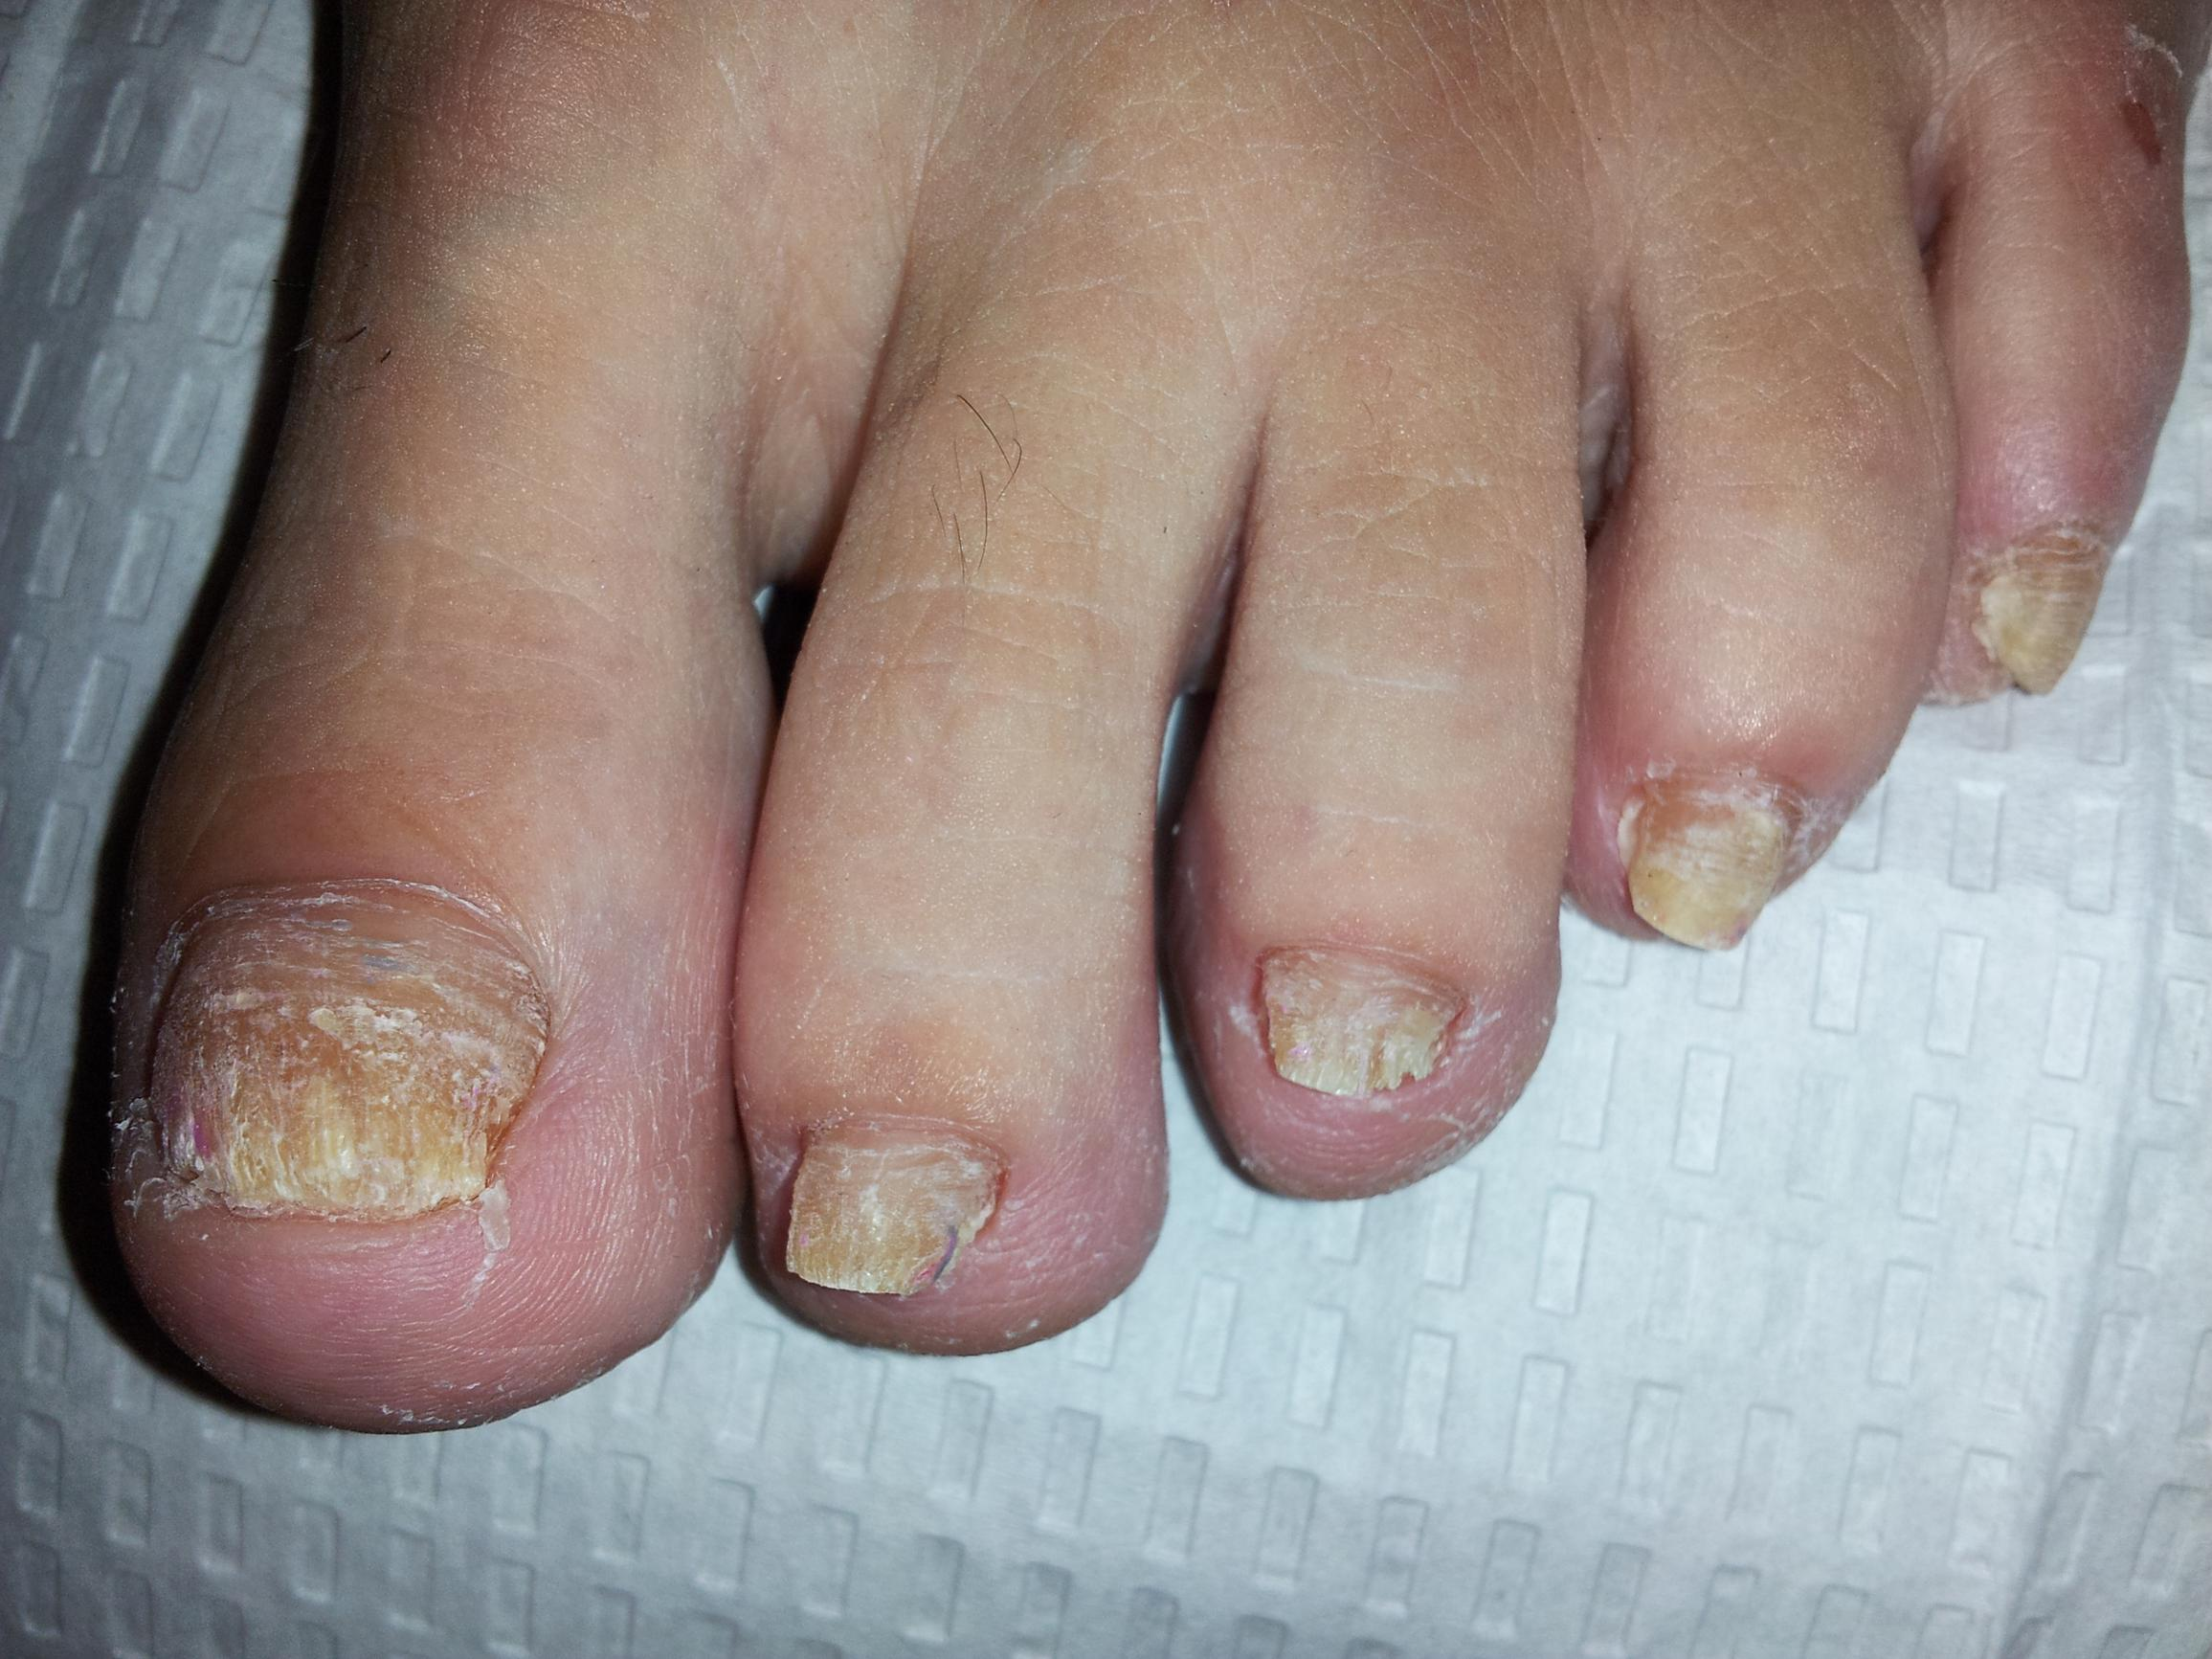 Laser Nail Fungus Treatment | Nail Fungus Treatment | Nail